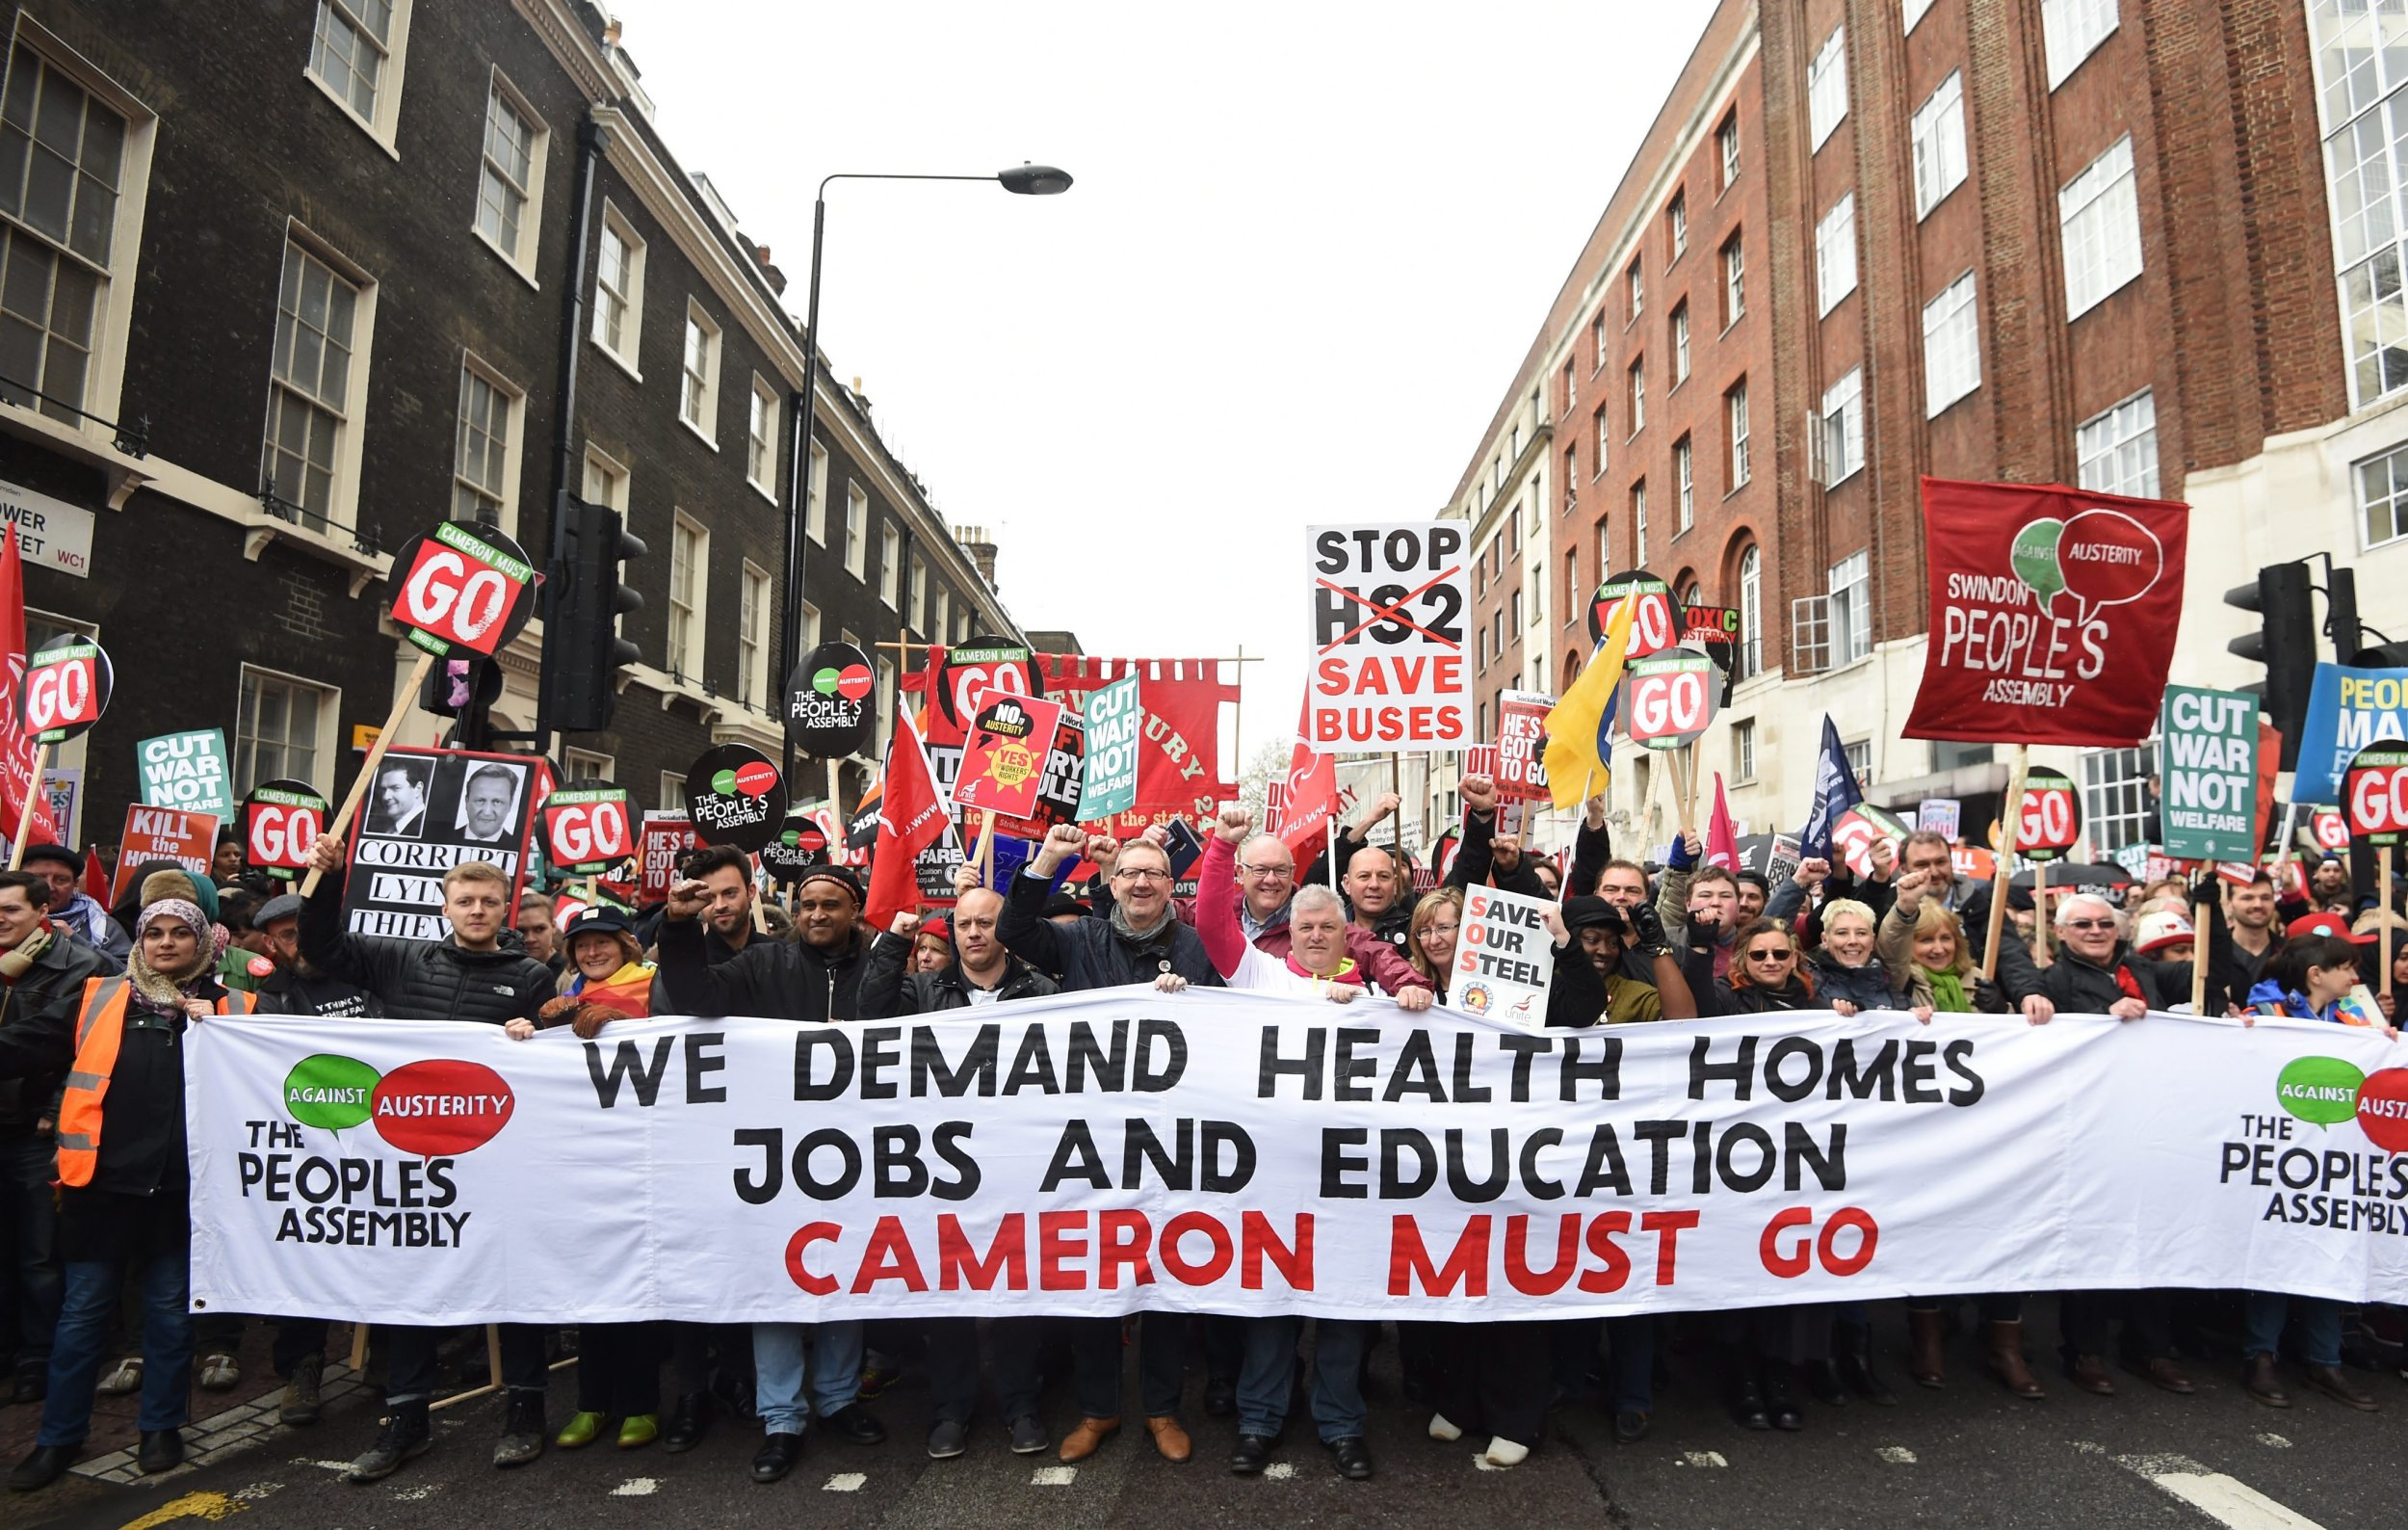 epa05262097 Protestors hold placards as they march during an Anti-Austerity National demonstration in London, Britain, 16 April 2016. The march under the slogan,'Health, Homes, Jobs and Education, Cameron Must Go, Tories Out!' was organized by the People's Assembly against Austerity. EPA/FACUNDO ARRIZABALAGA